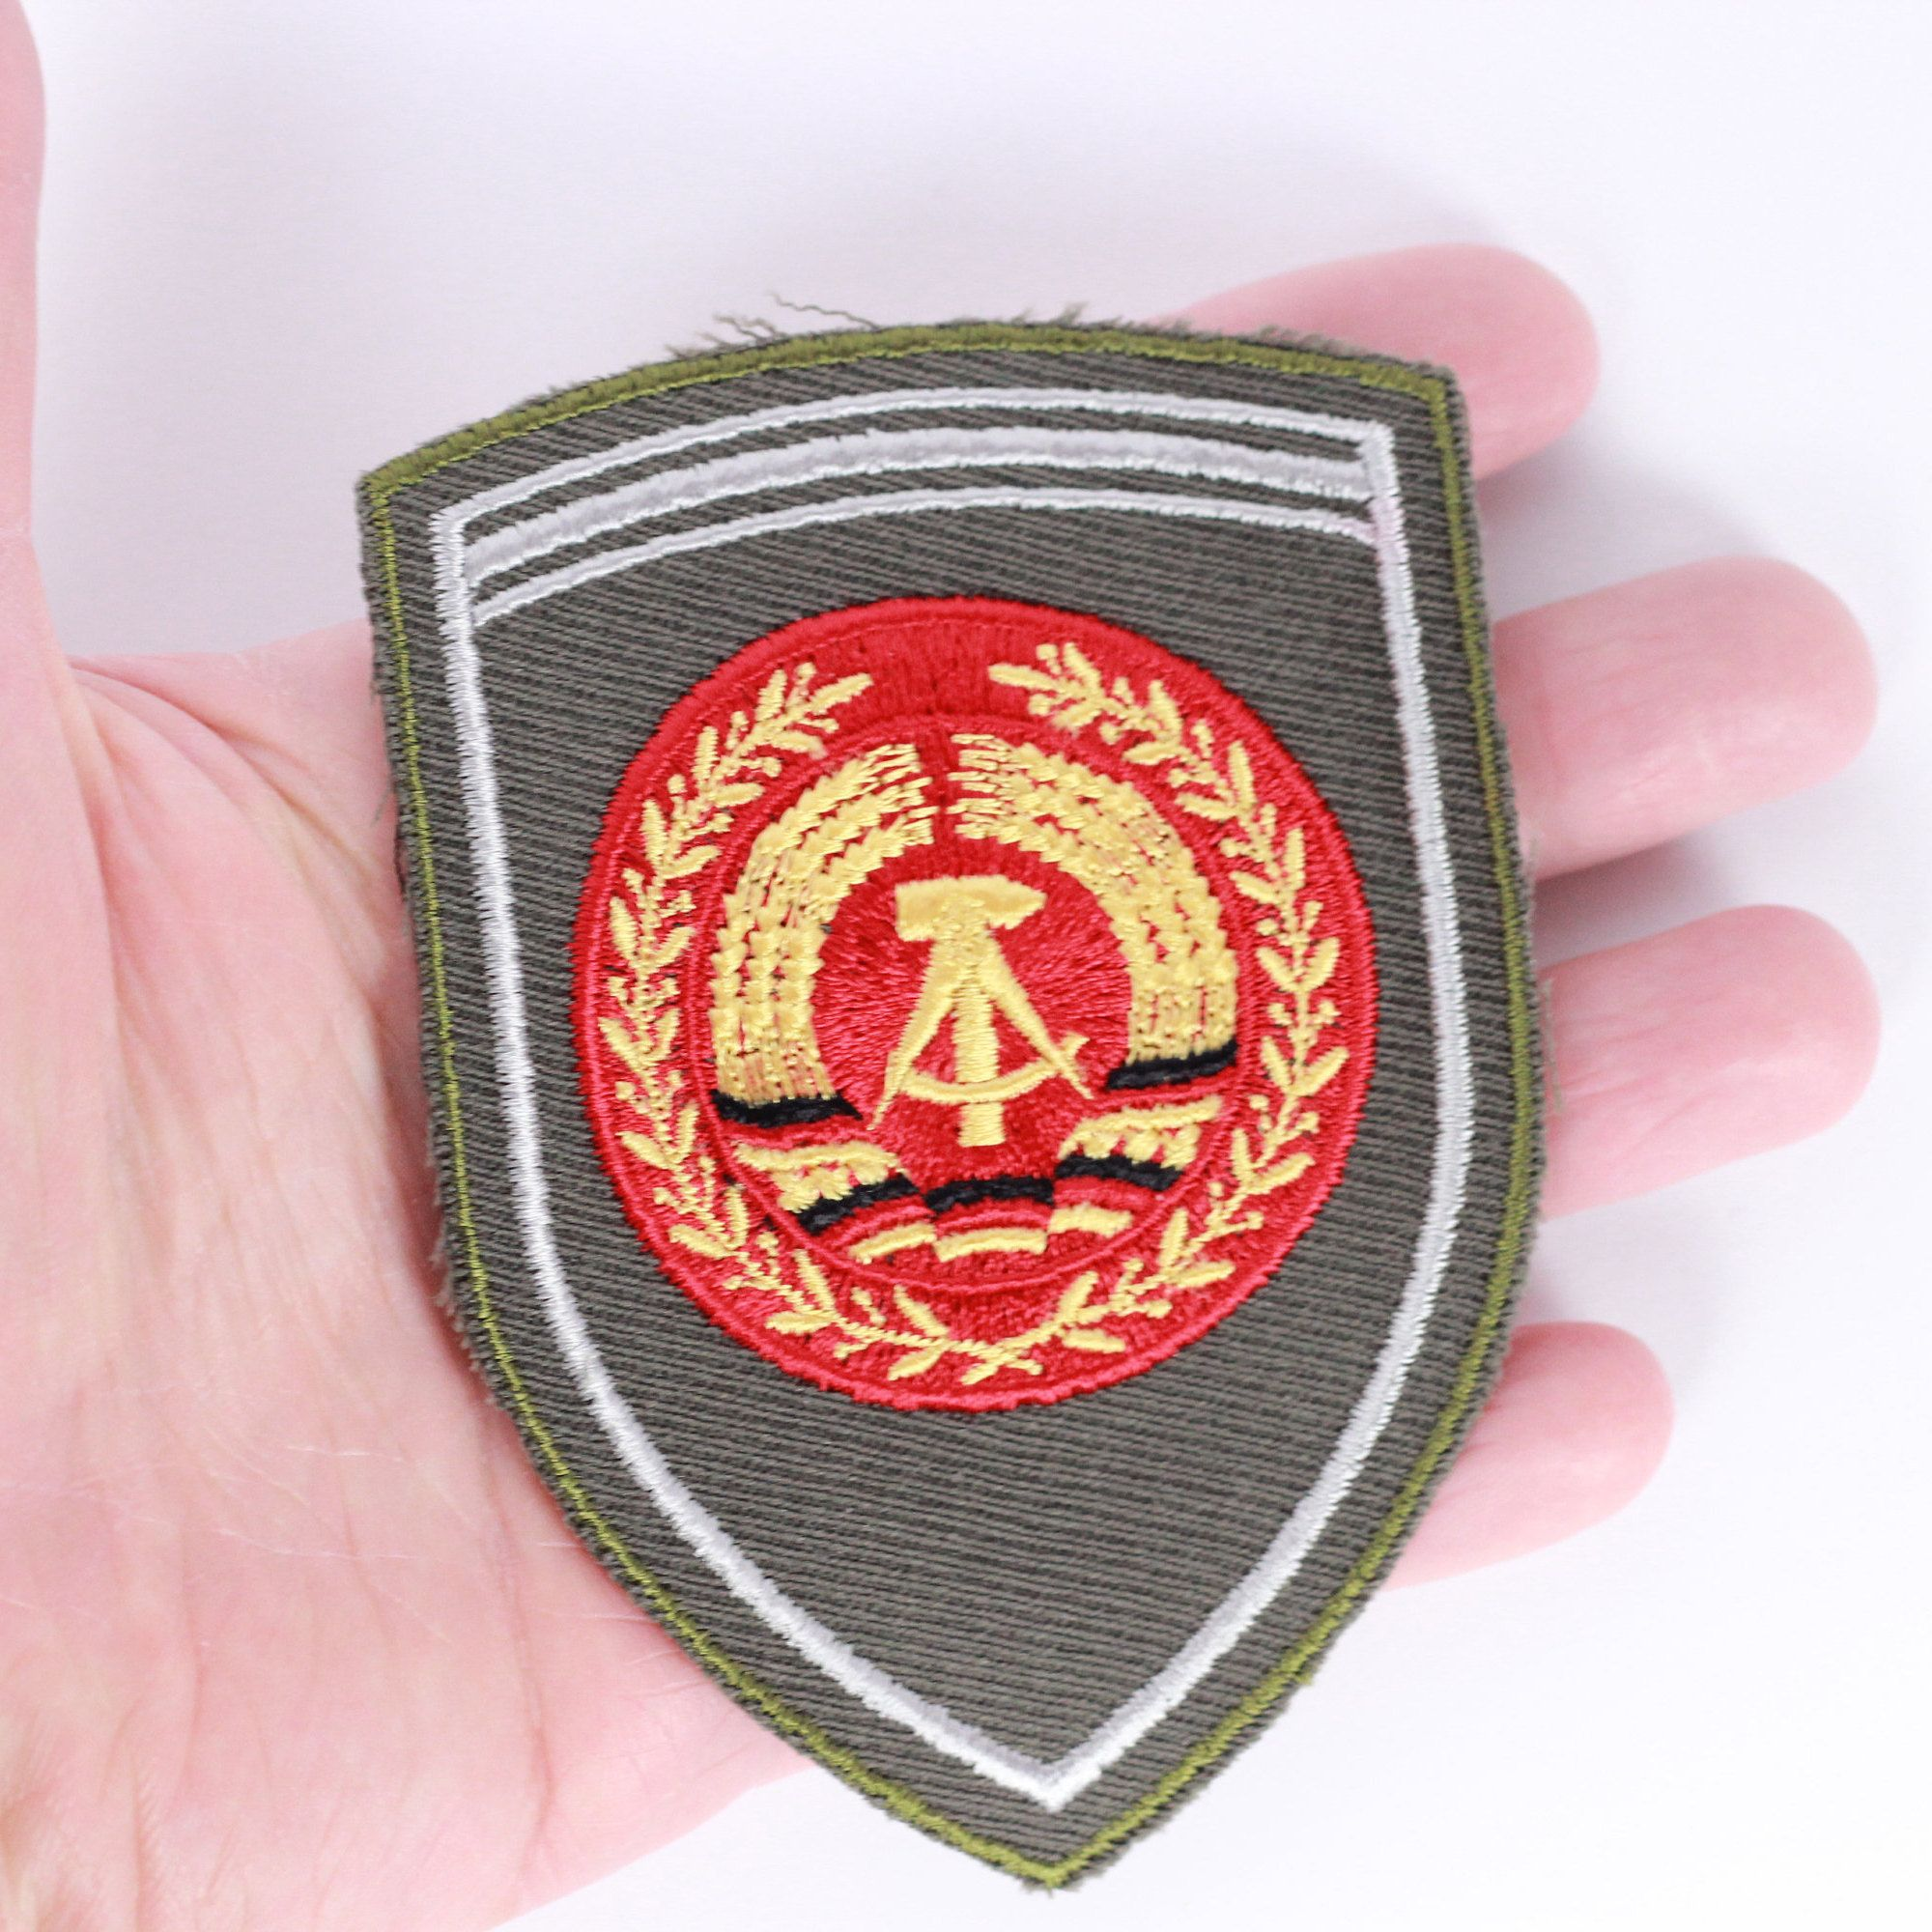 Vintage Army Patches, Army Old Stock, Embroidery Patch